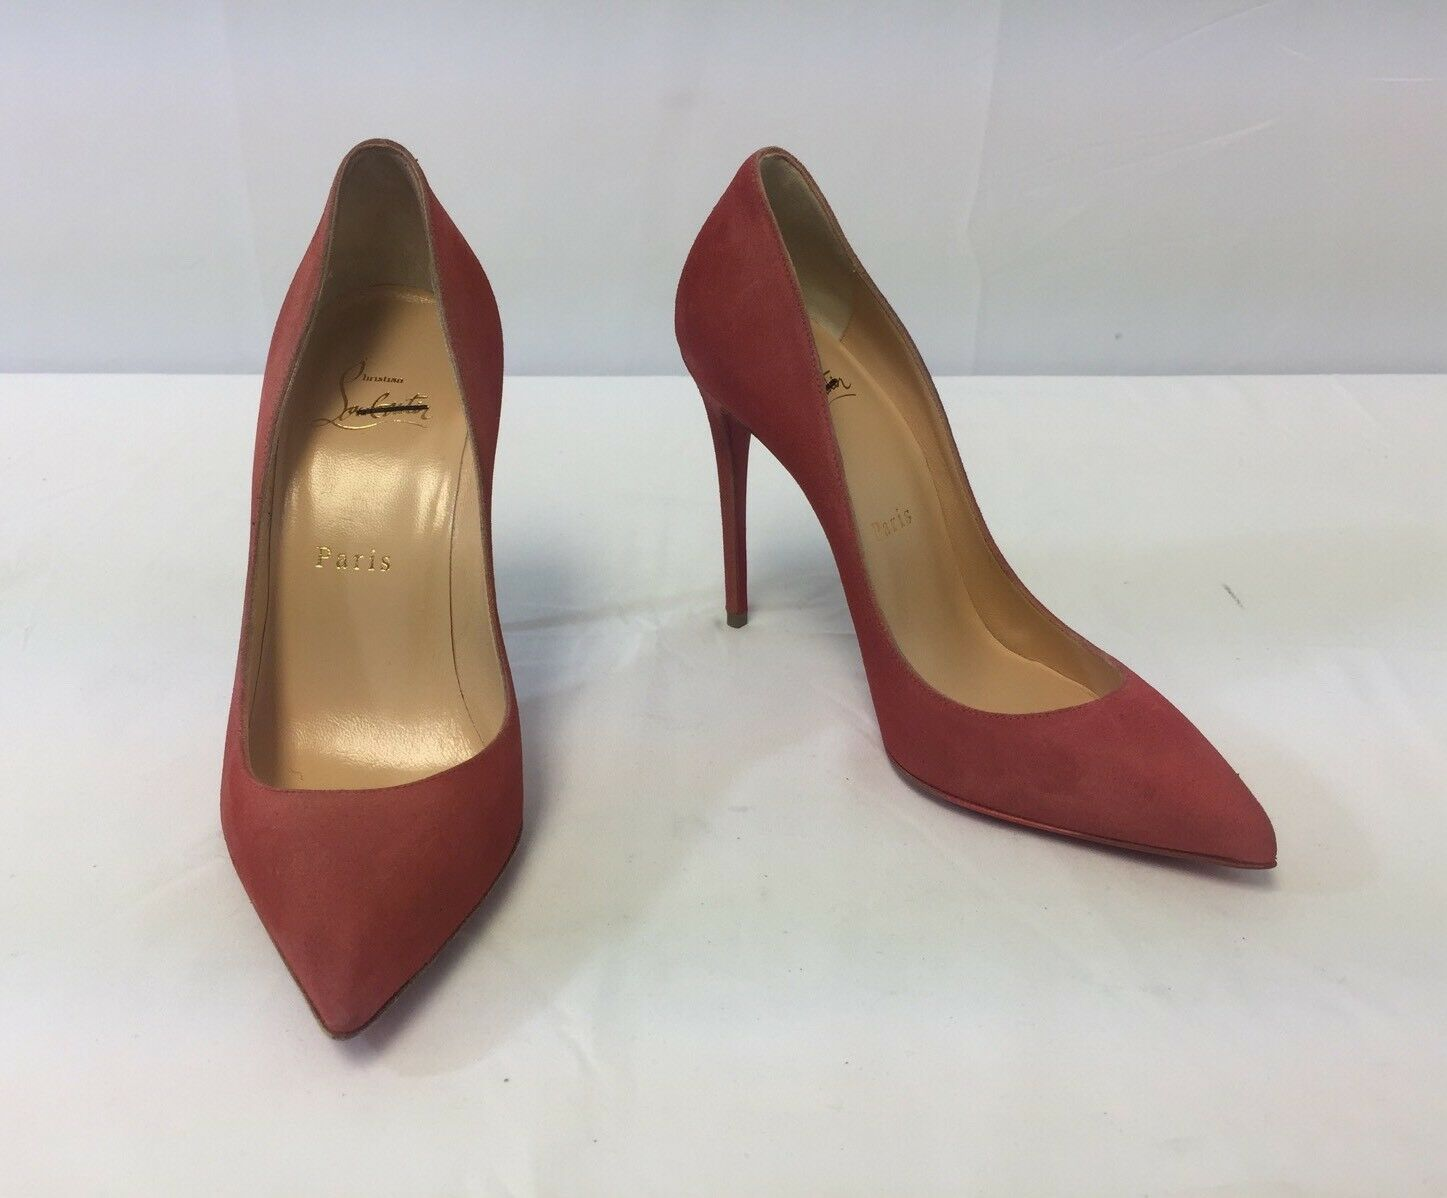 all'ingrosso a buon mercato New Christian Louboutin Pigalle Follies Follies Follies Suede Point-Toe Pumps Dimensione 36 6  675.00  Sconto del 60%